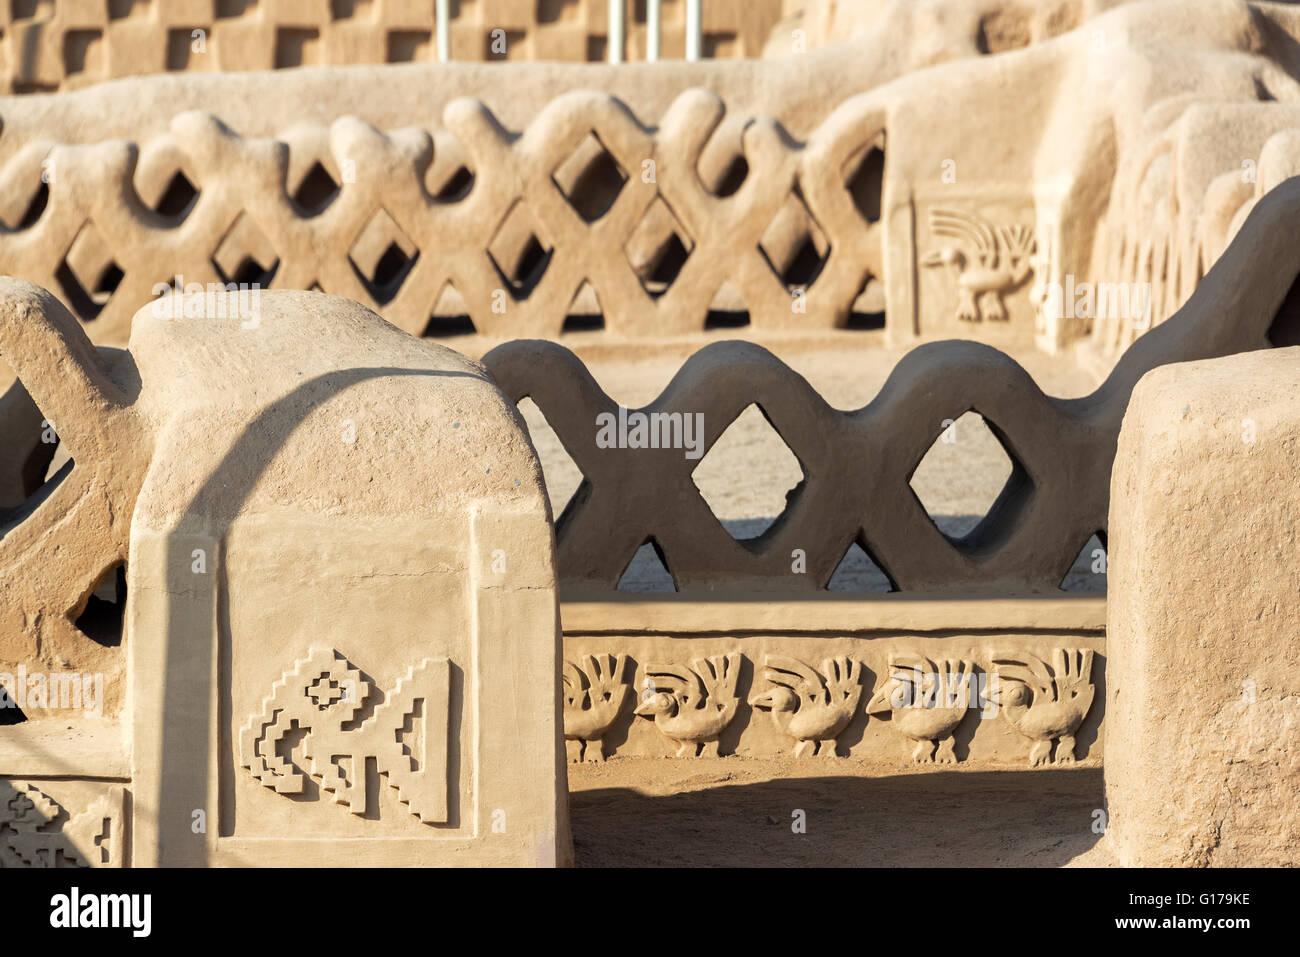 Details of the stunning adobe architecture in Chan Chan in Trujillo, Peru - Stock Image